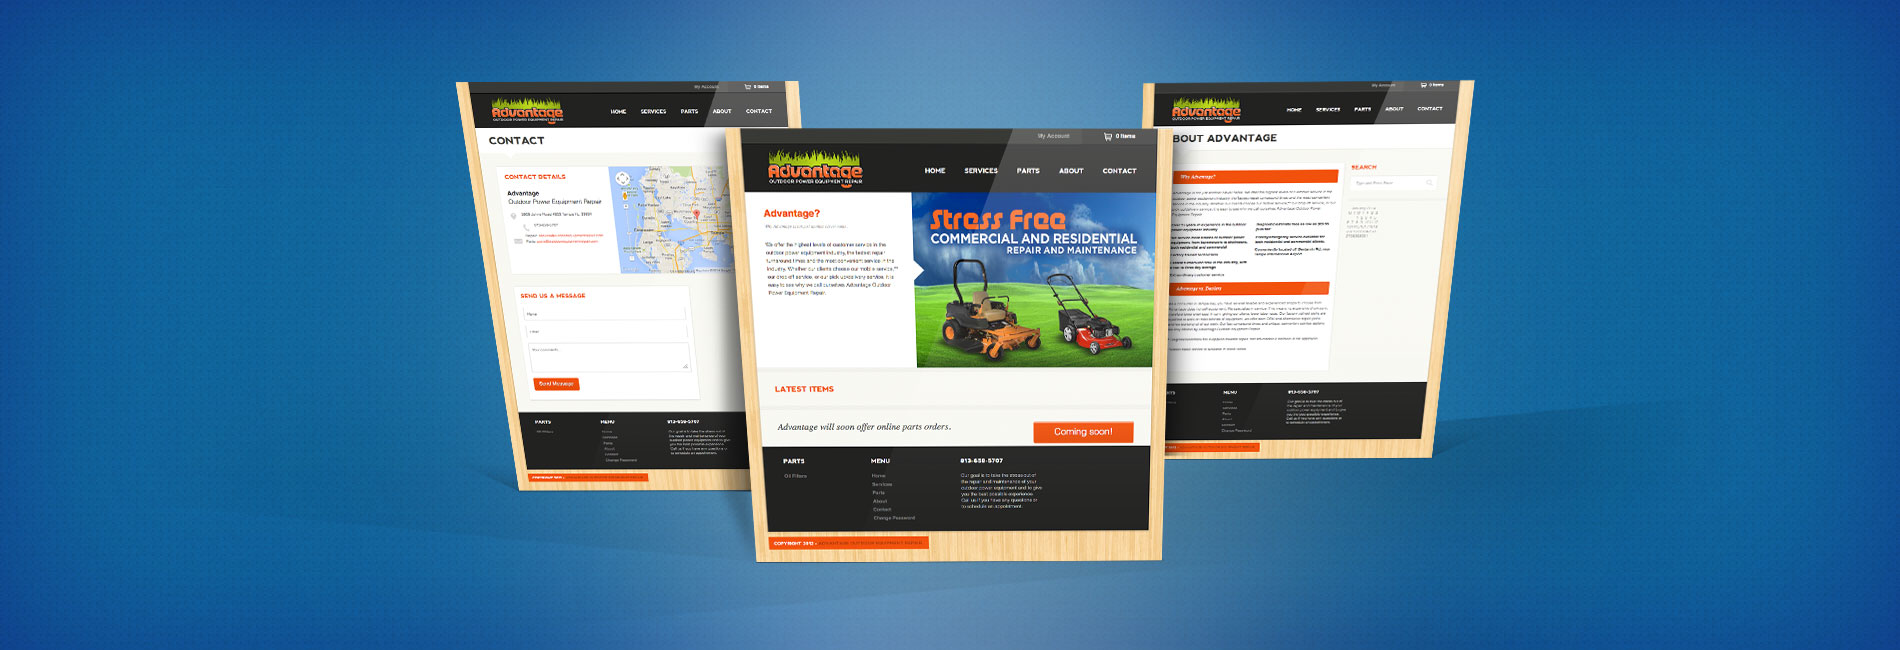 advantage equipment repair website design